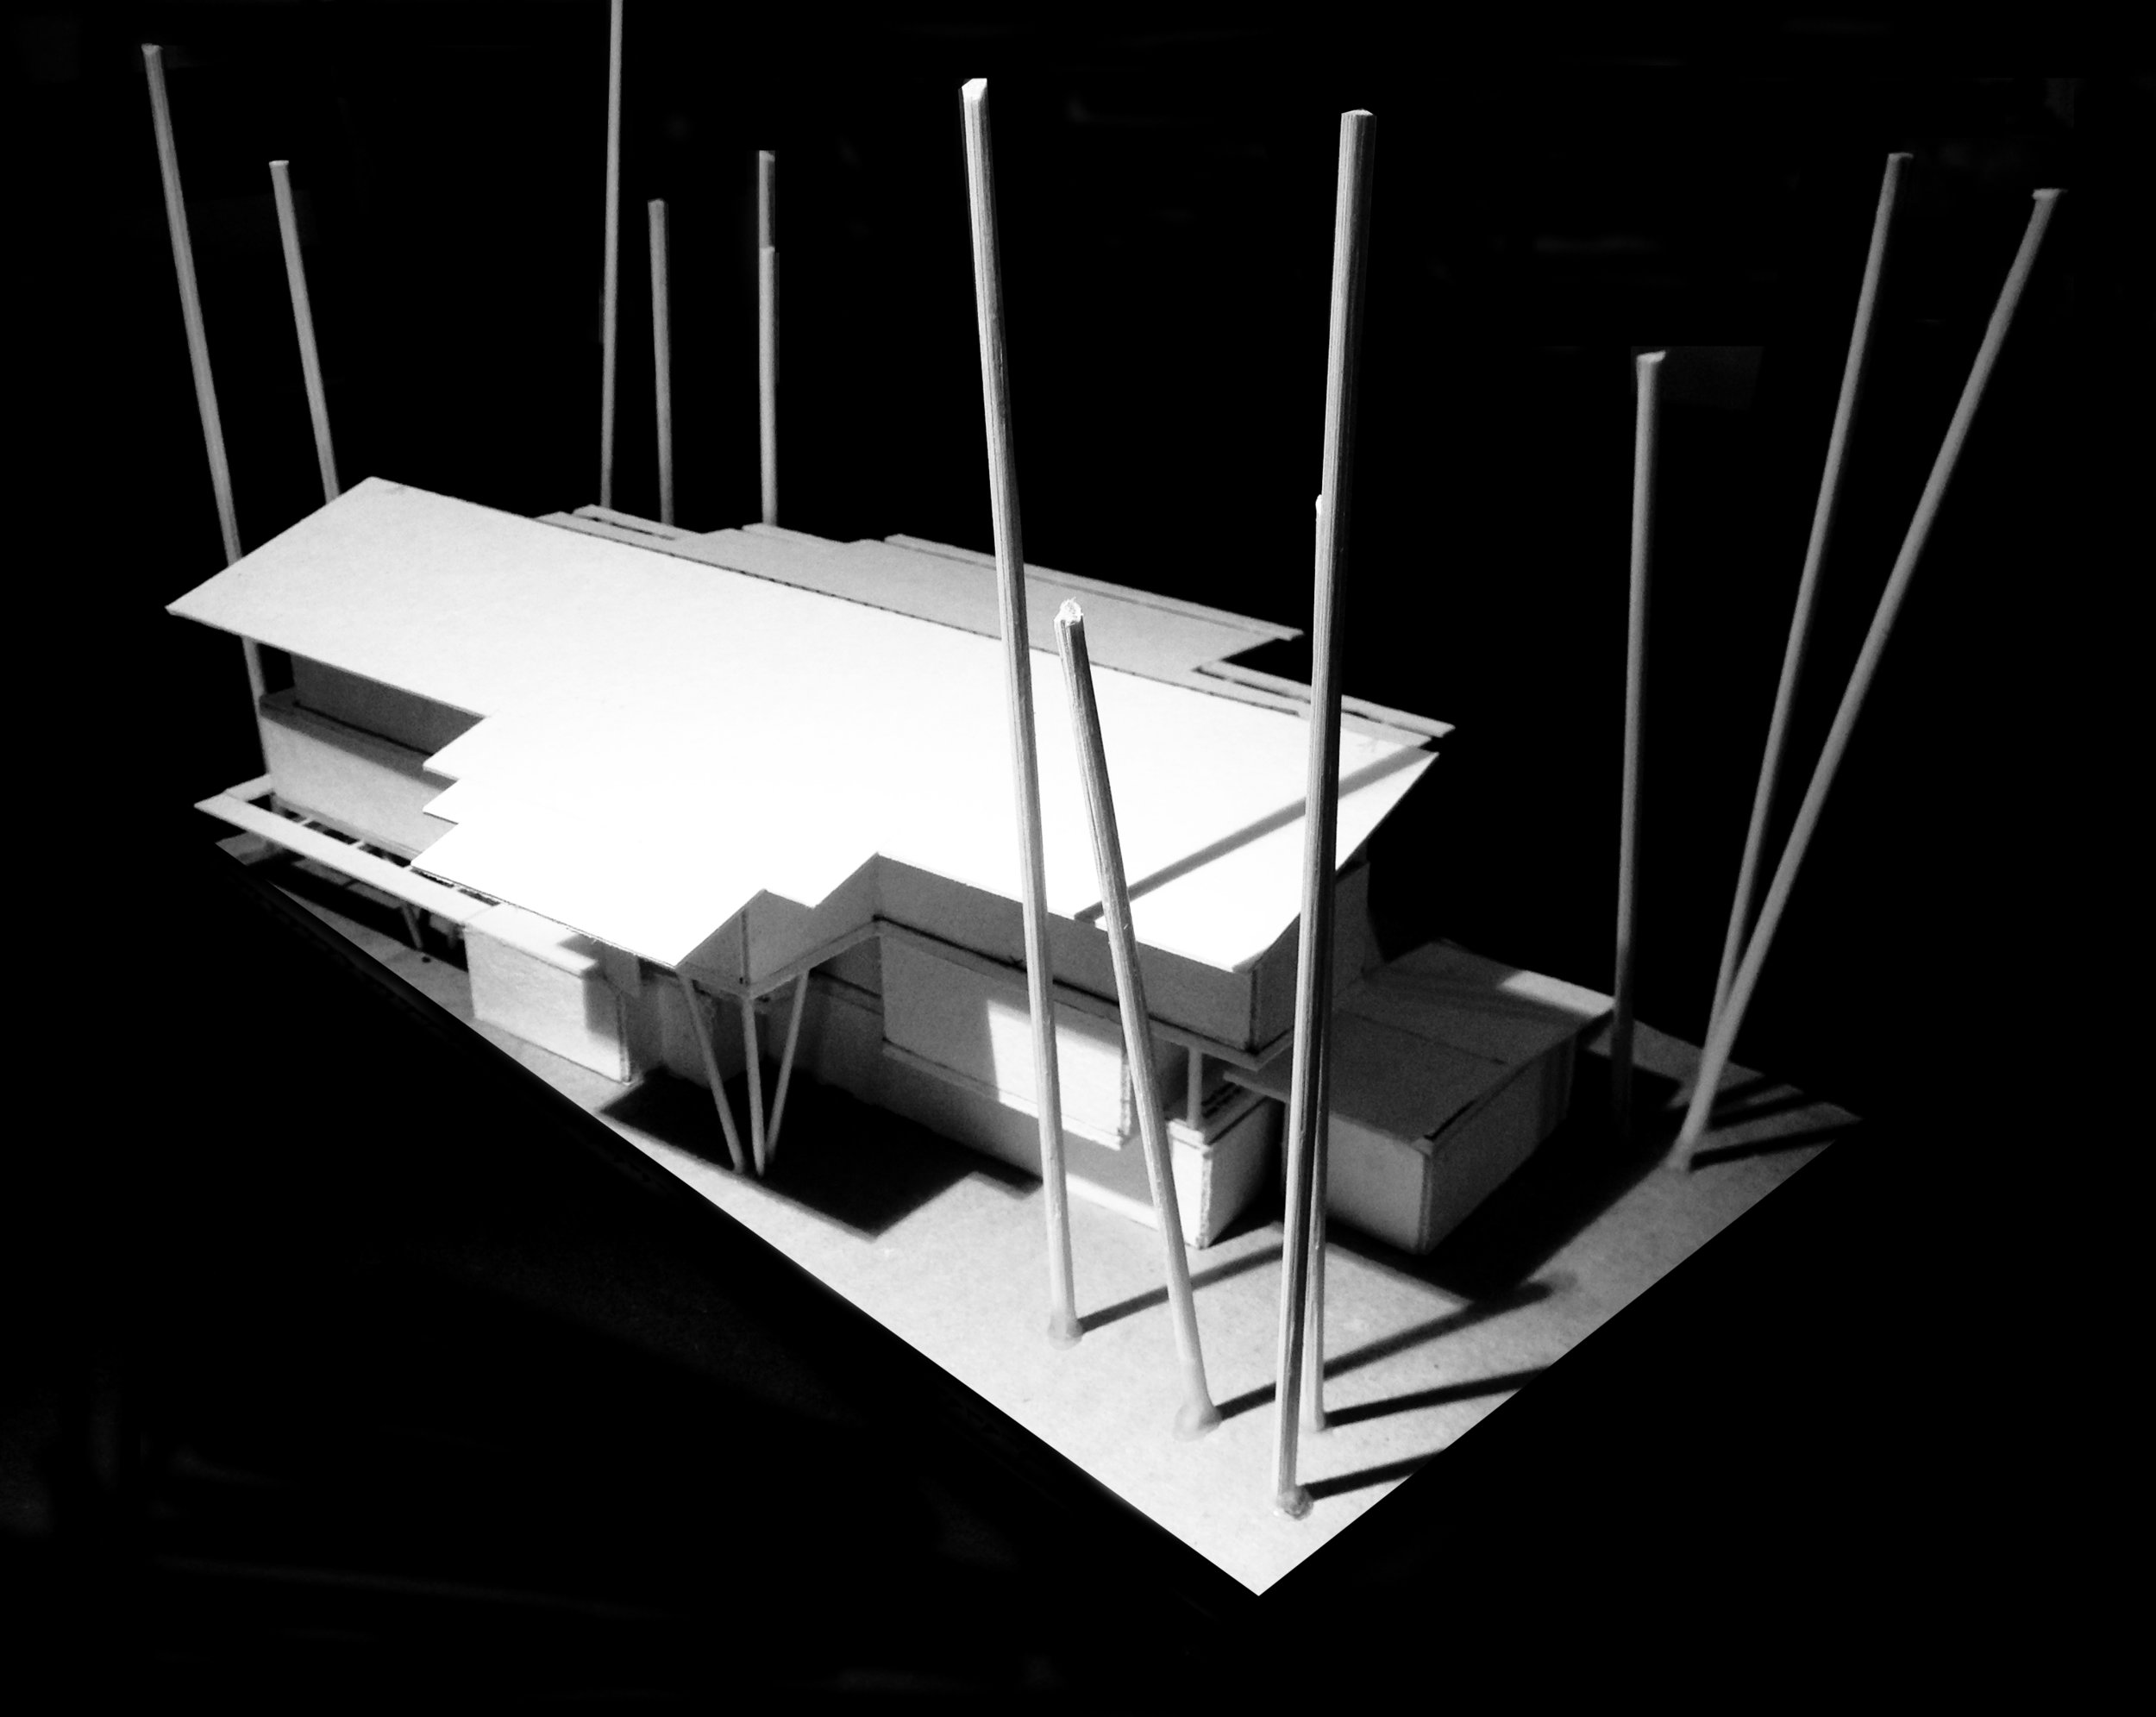 3 Storey Building design model - South End Looking North